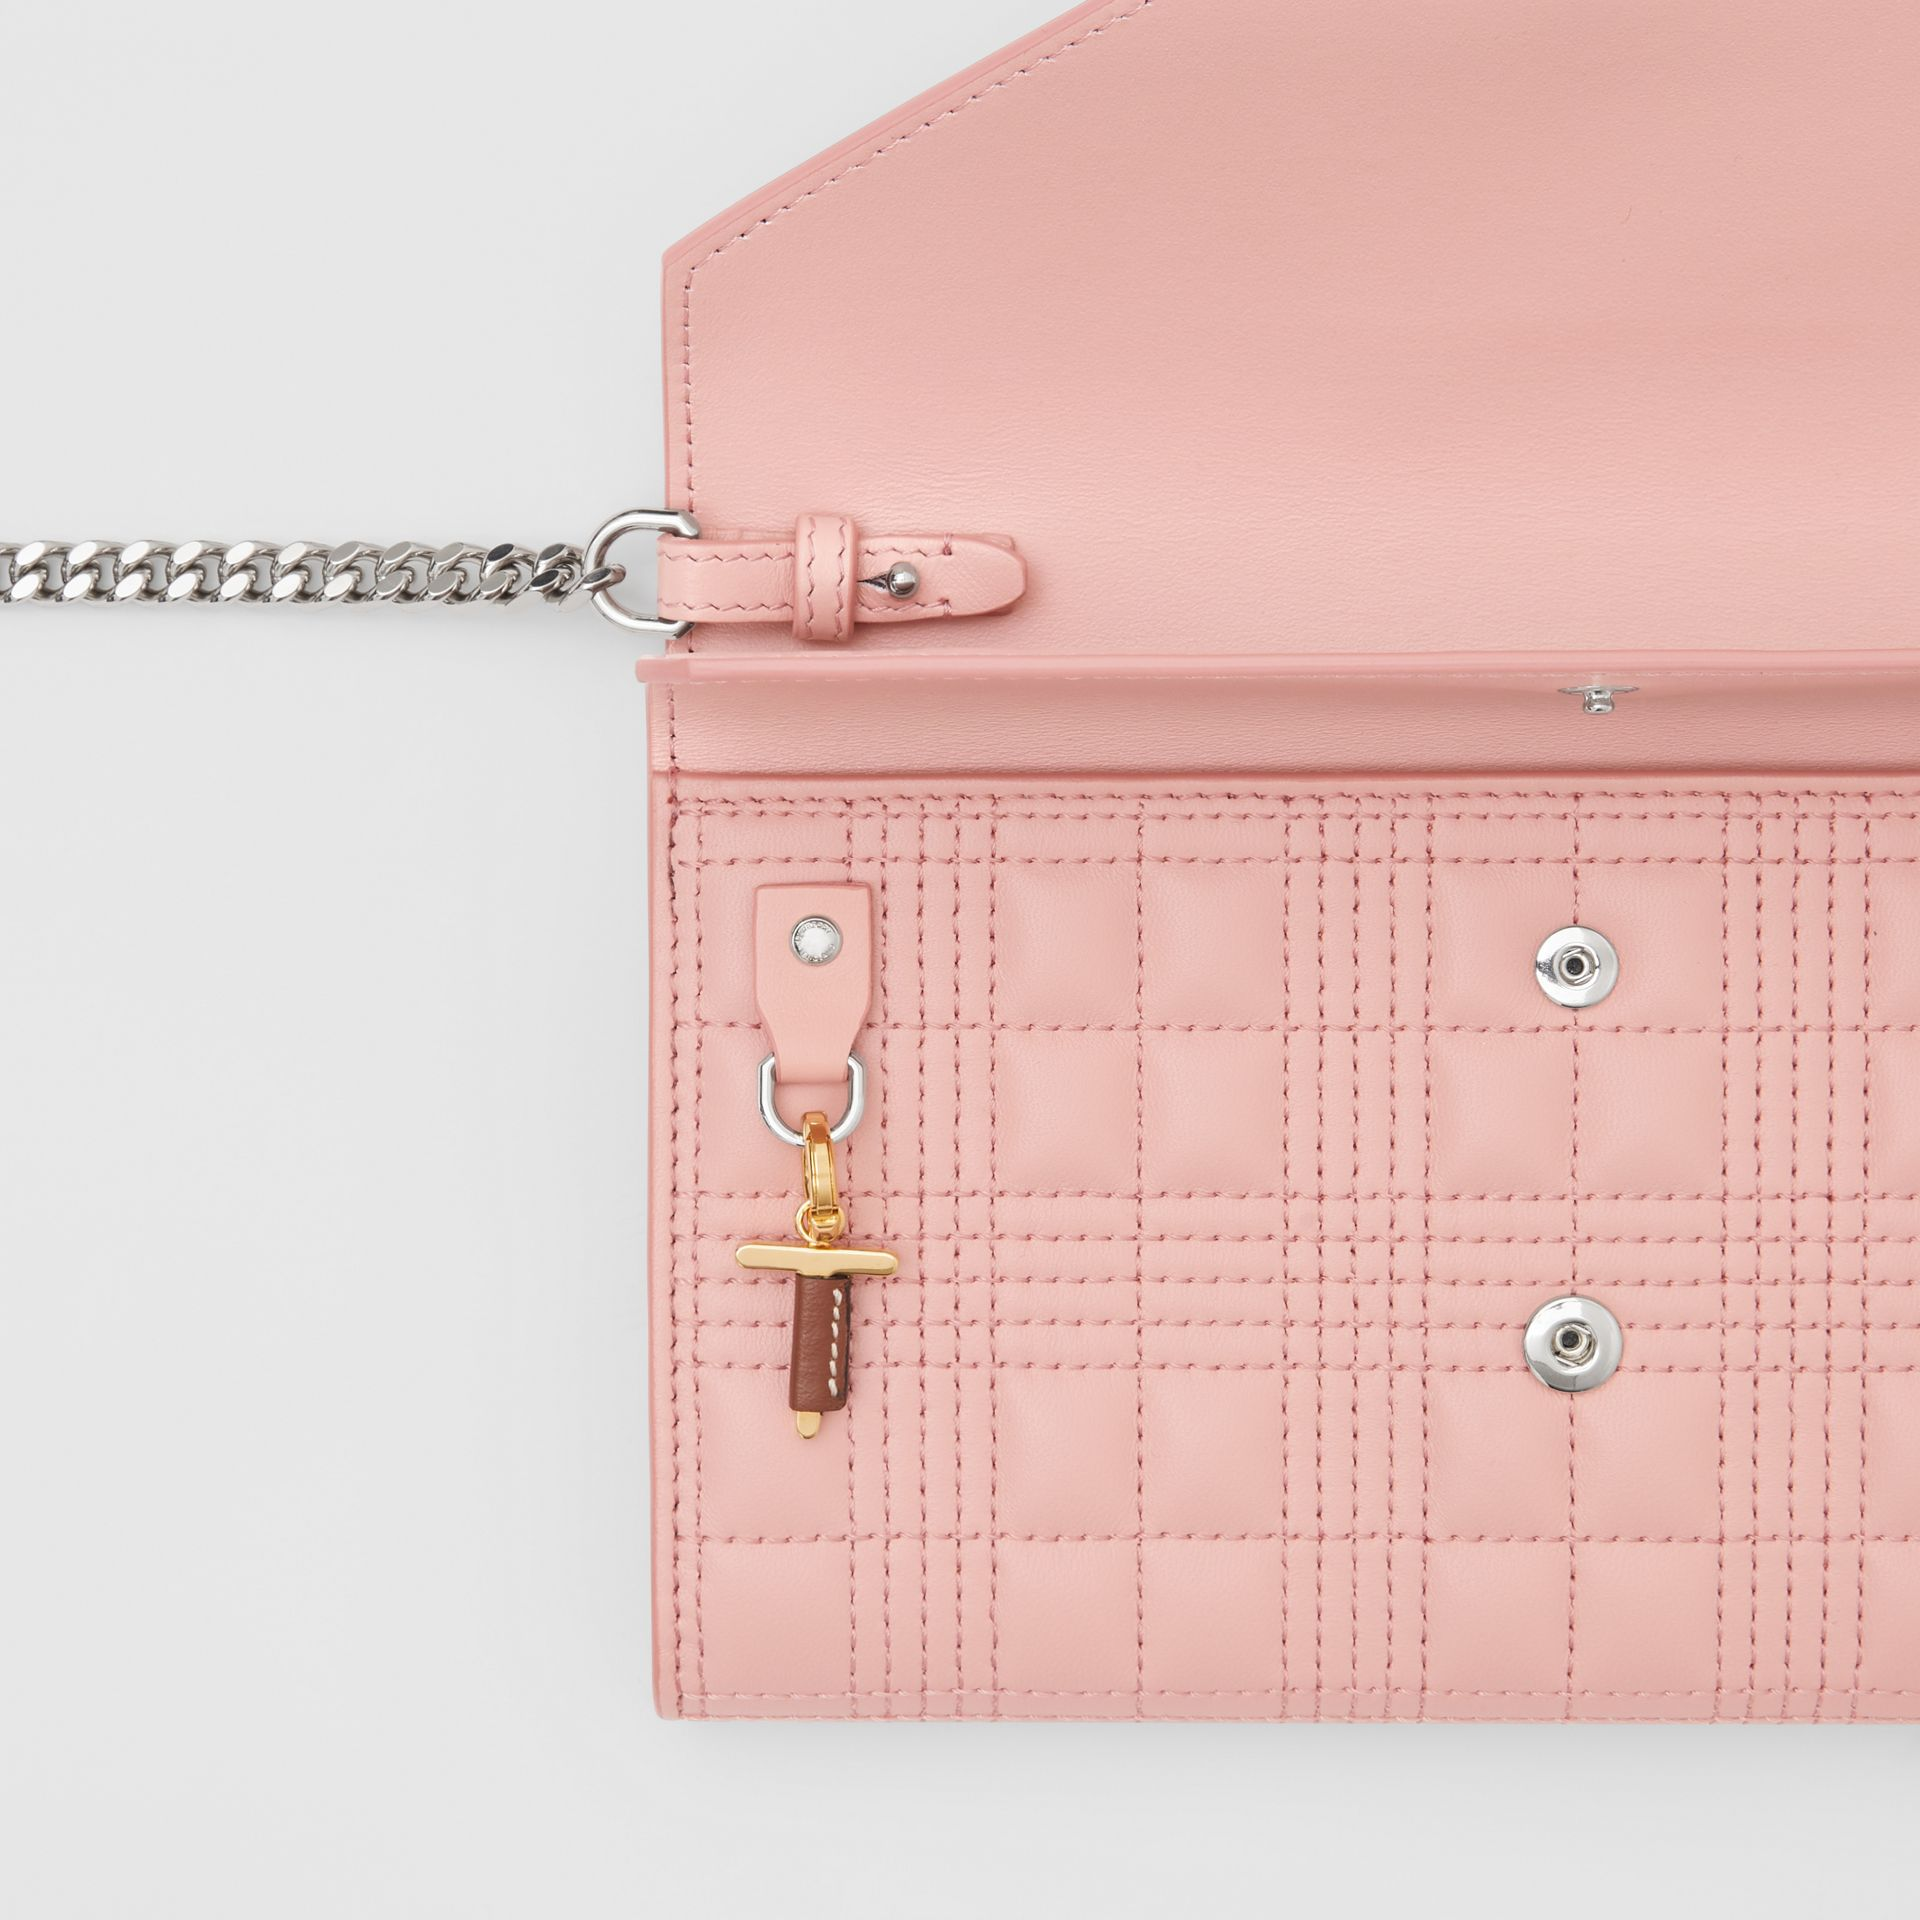 Quilted Lambskin Wallet with Detachable Chain Strap in Blush Pink - Women | Burberry - gallery image 8